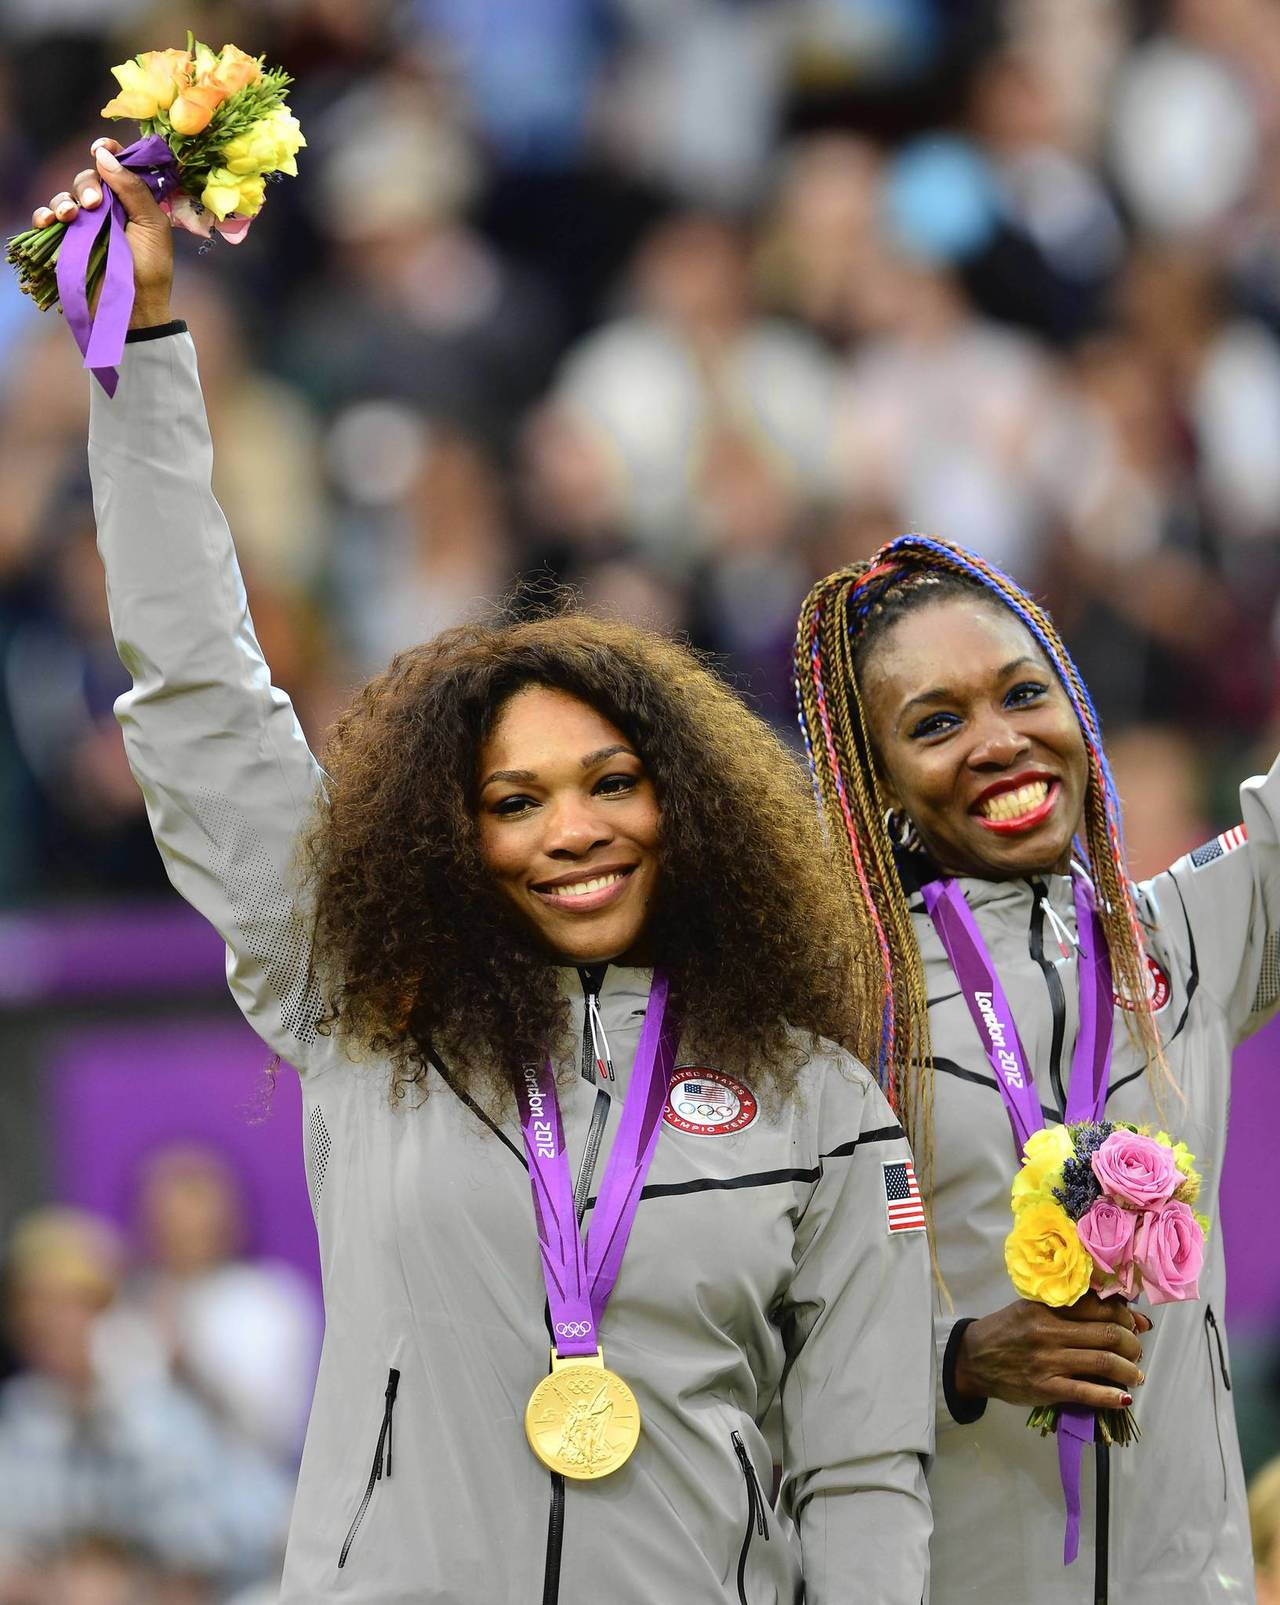 Serena and Venus Williams celebrate on the podium after receiving their gold medal for winning the doubles tennis tournament at the All England Tennis Club in Wimbledon.